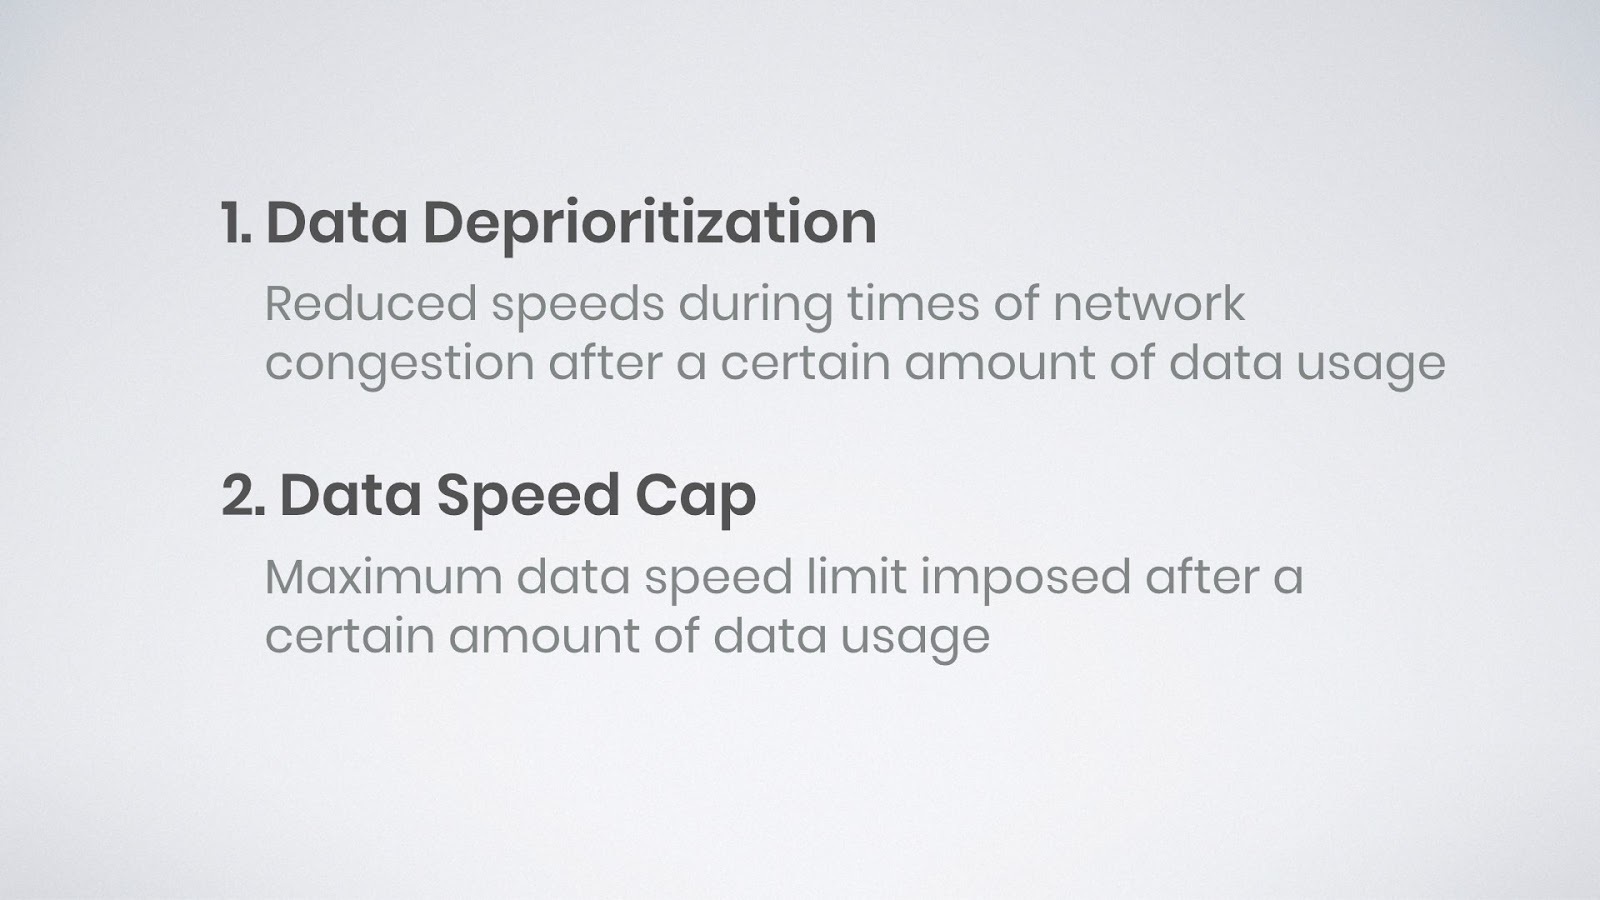 graphic explaining data deprioritization and a data speed cap